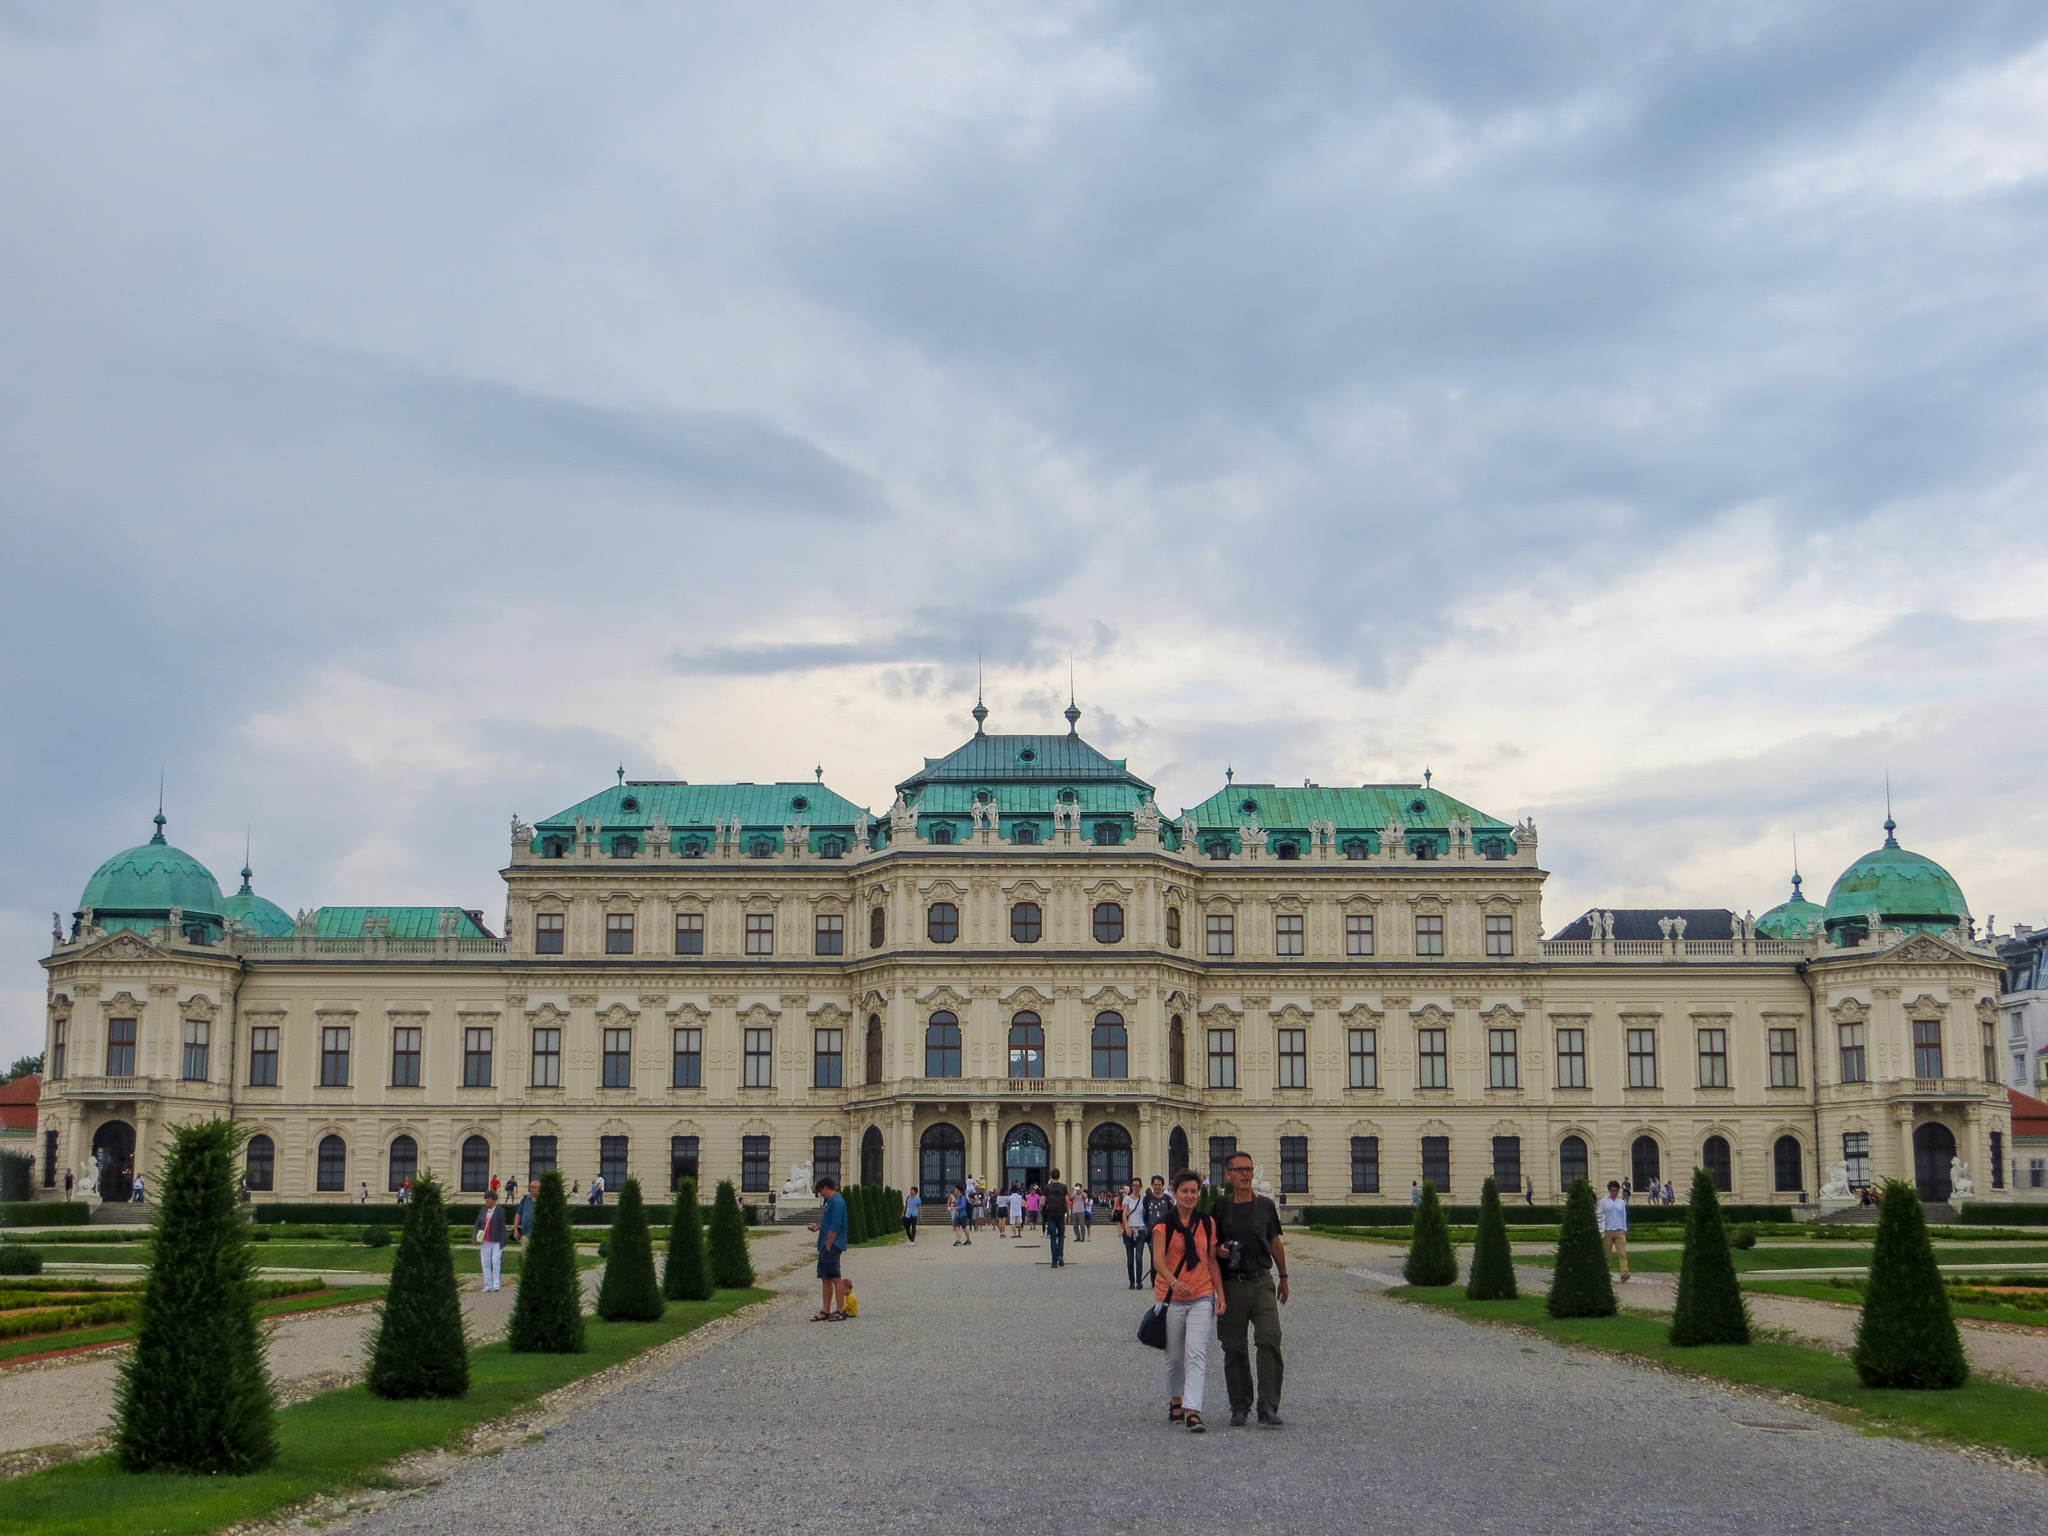 backpacking in europe for 2 weeks might bring you to vienna